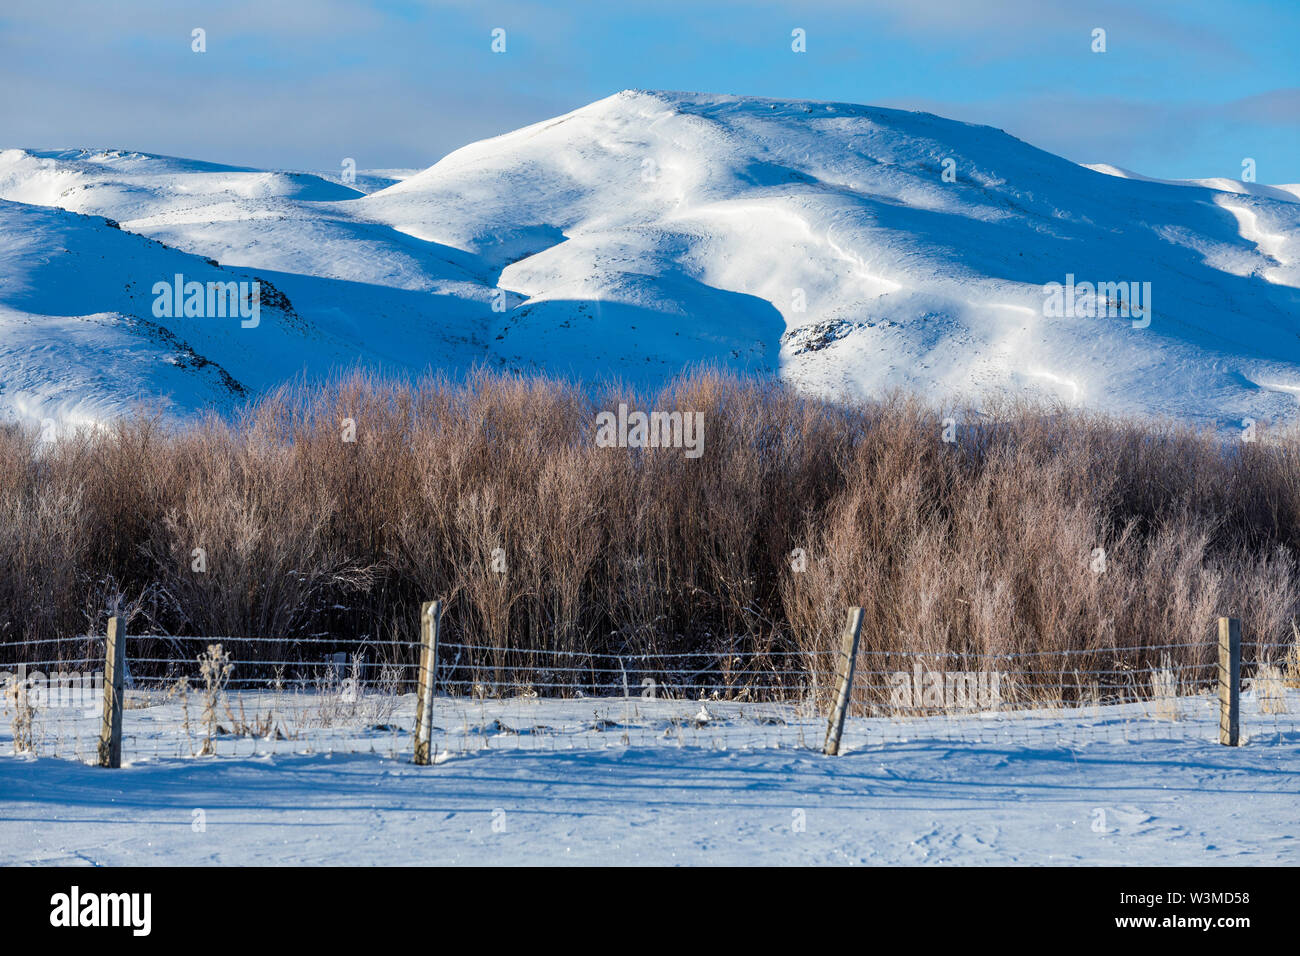 Snow capped mountains in Picabo, Idaho - Stock Image